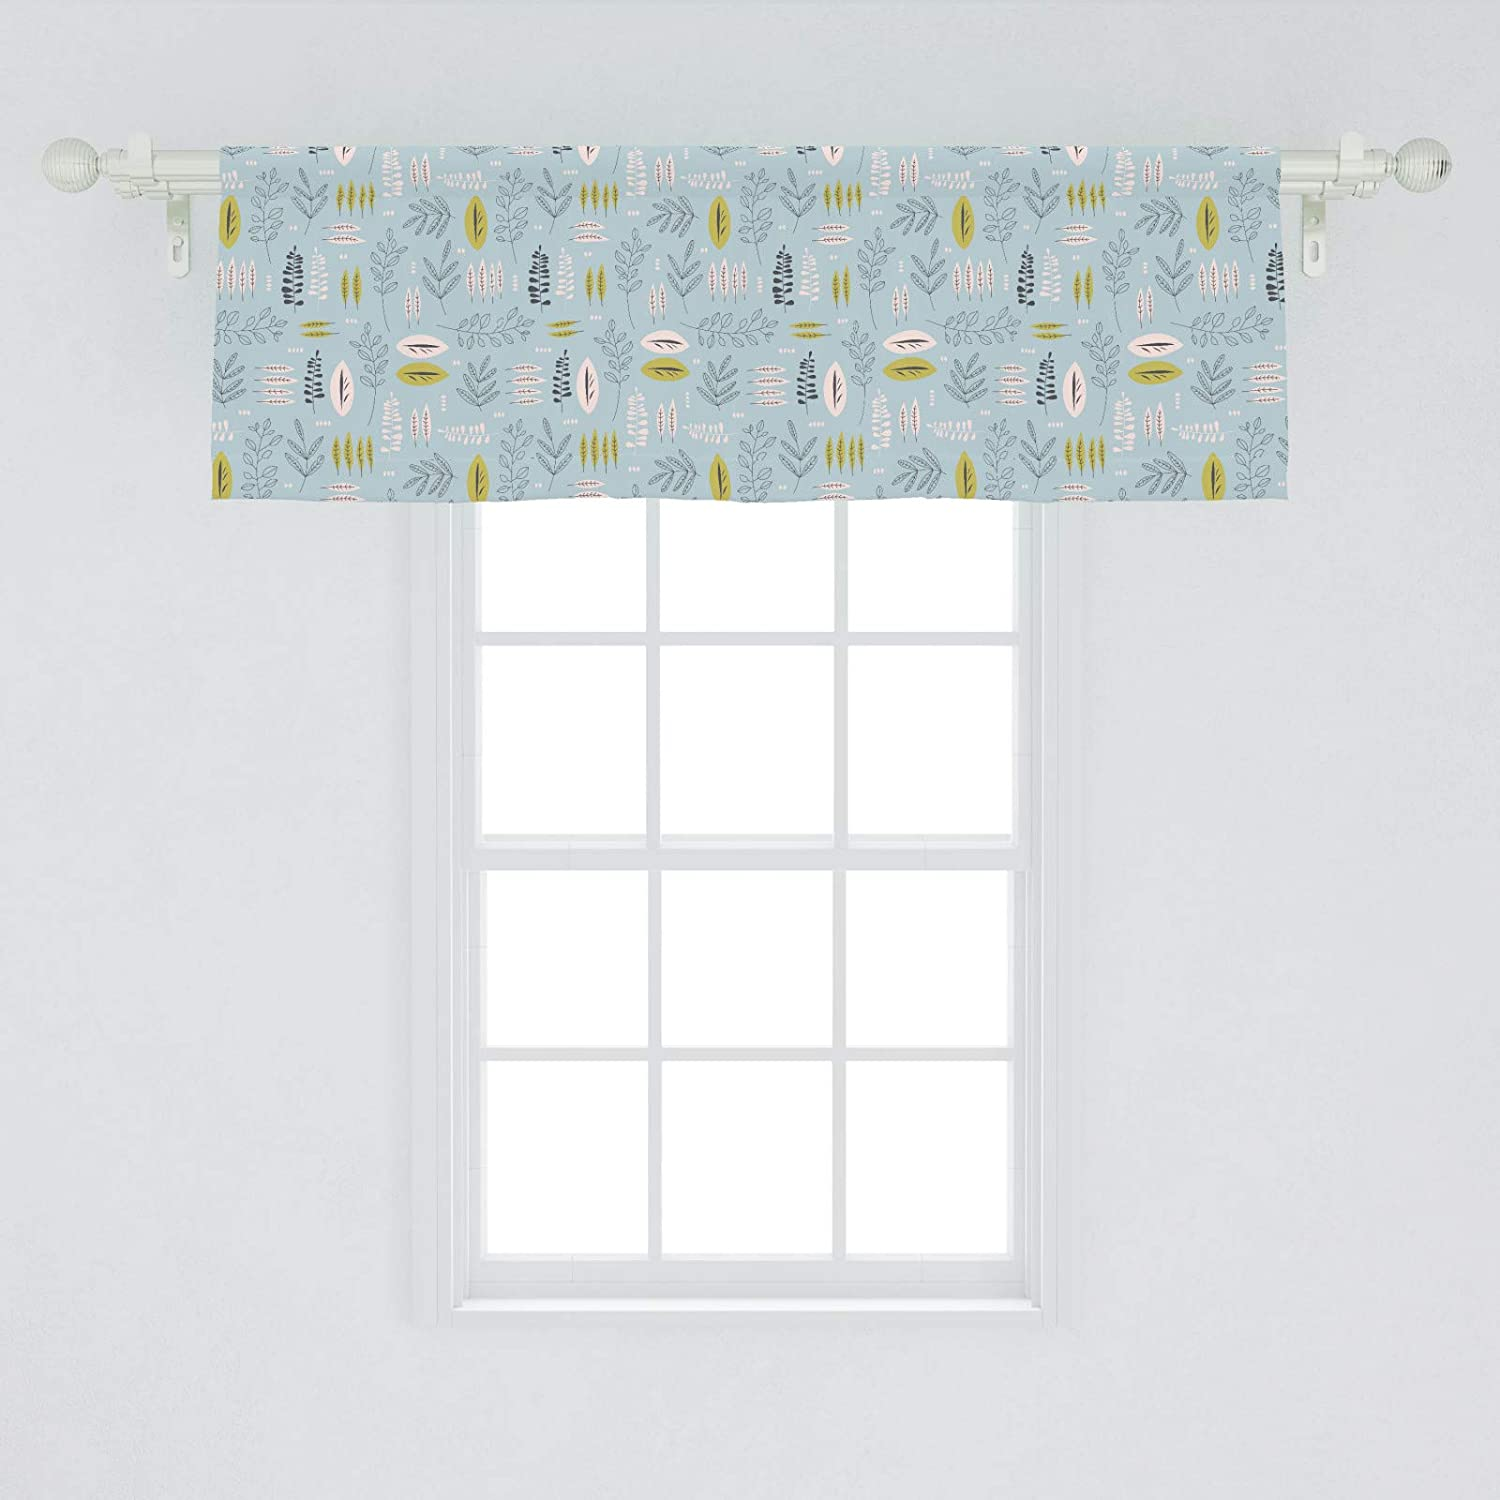 Ambesonne Botanical Window Valance, Continuous Pattern of Leaves and Branches, Curtain Valance for Kitchen Bedroom Decor with Rod Pocket, 54